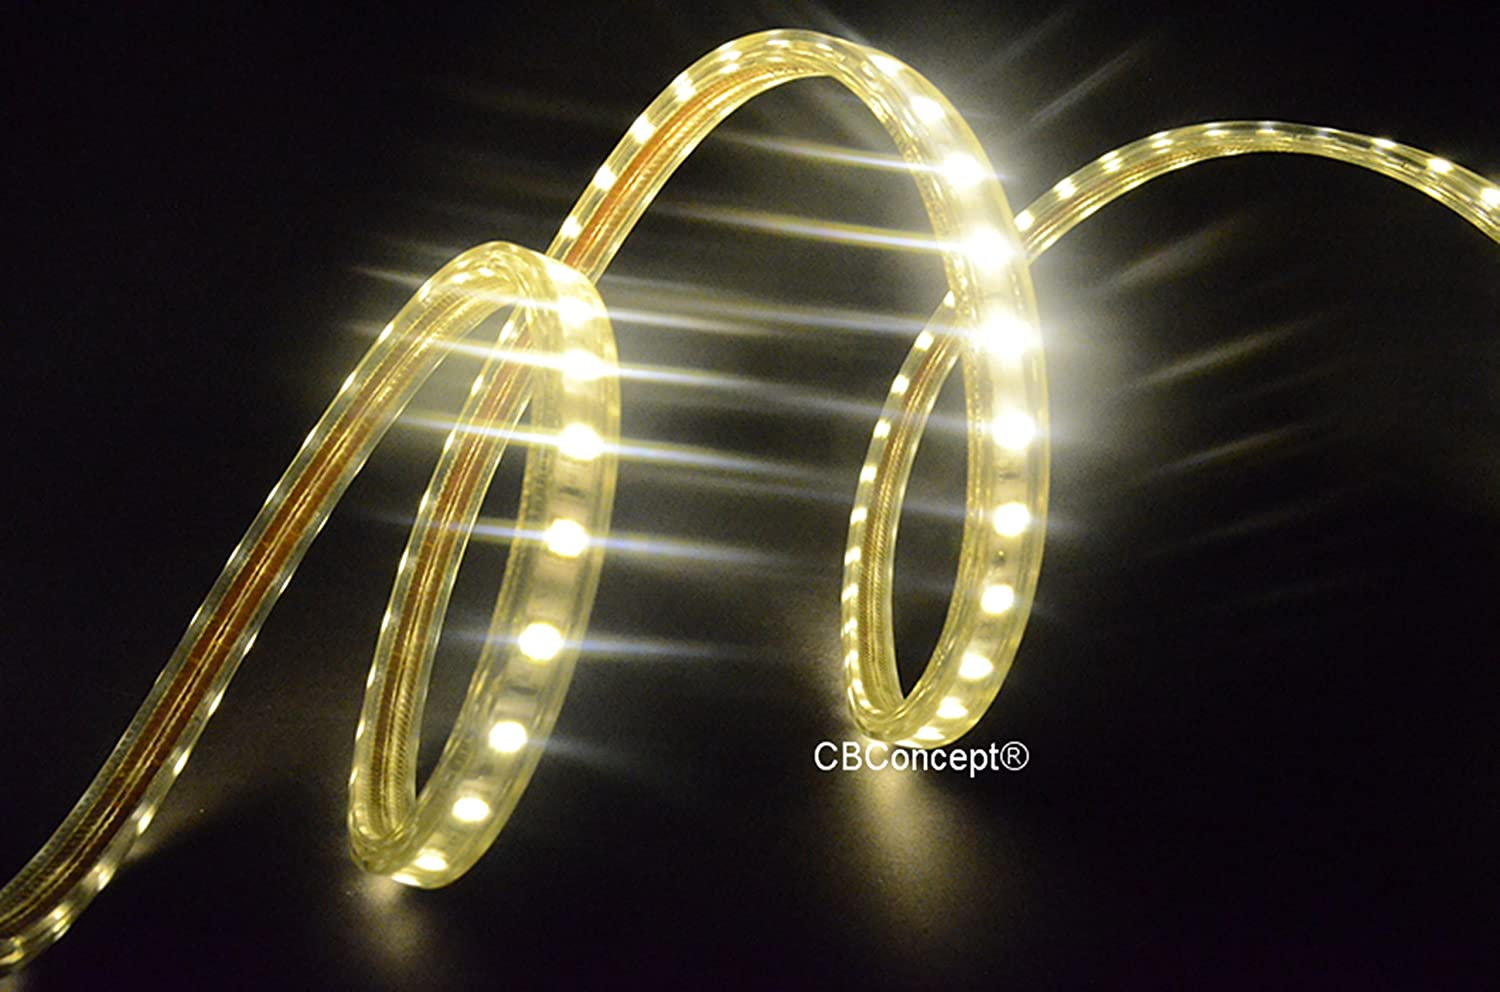 Amazon cbconcept ul listed 80 feetsuper bright 22000 lumen amazon cbconcept ul listed 80 feetsuper bright 22000 lumen 3000k warm white dimmable 110 120v ac flexible flat led strip rope light 1470 units aloadofball